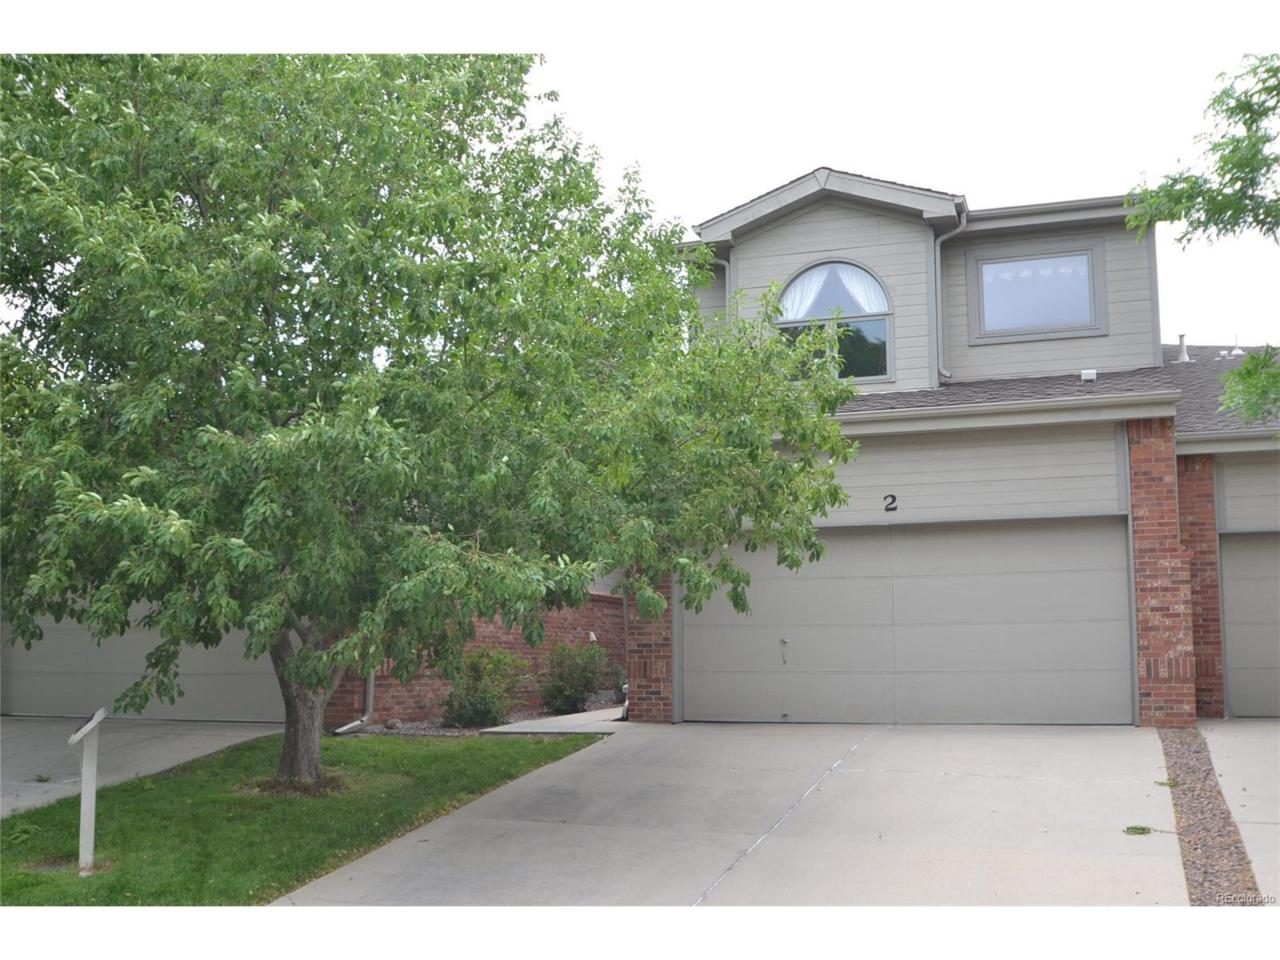 12039 W 52nd Place #2, Arvada, CO 80002 (MLS #3822465) :: 8z Real Estate